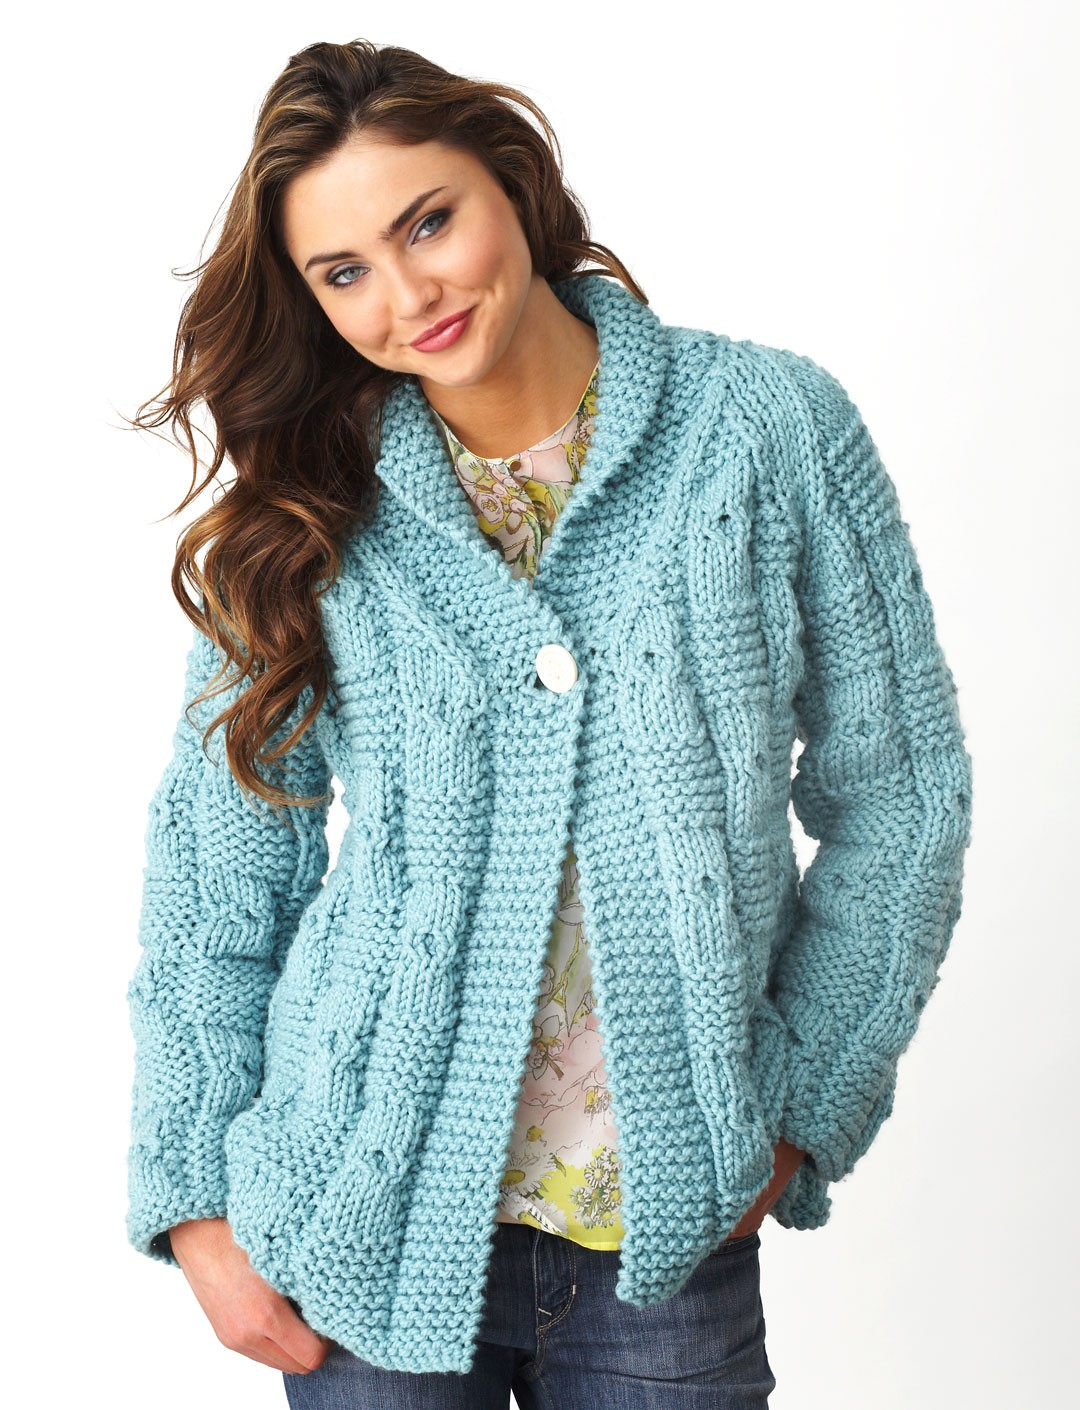 Free Knitting Patterns For Ladies Cardigans : Bernat Textured Checks Cardigan, Knit Pattern Yarnspirations